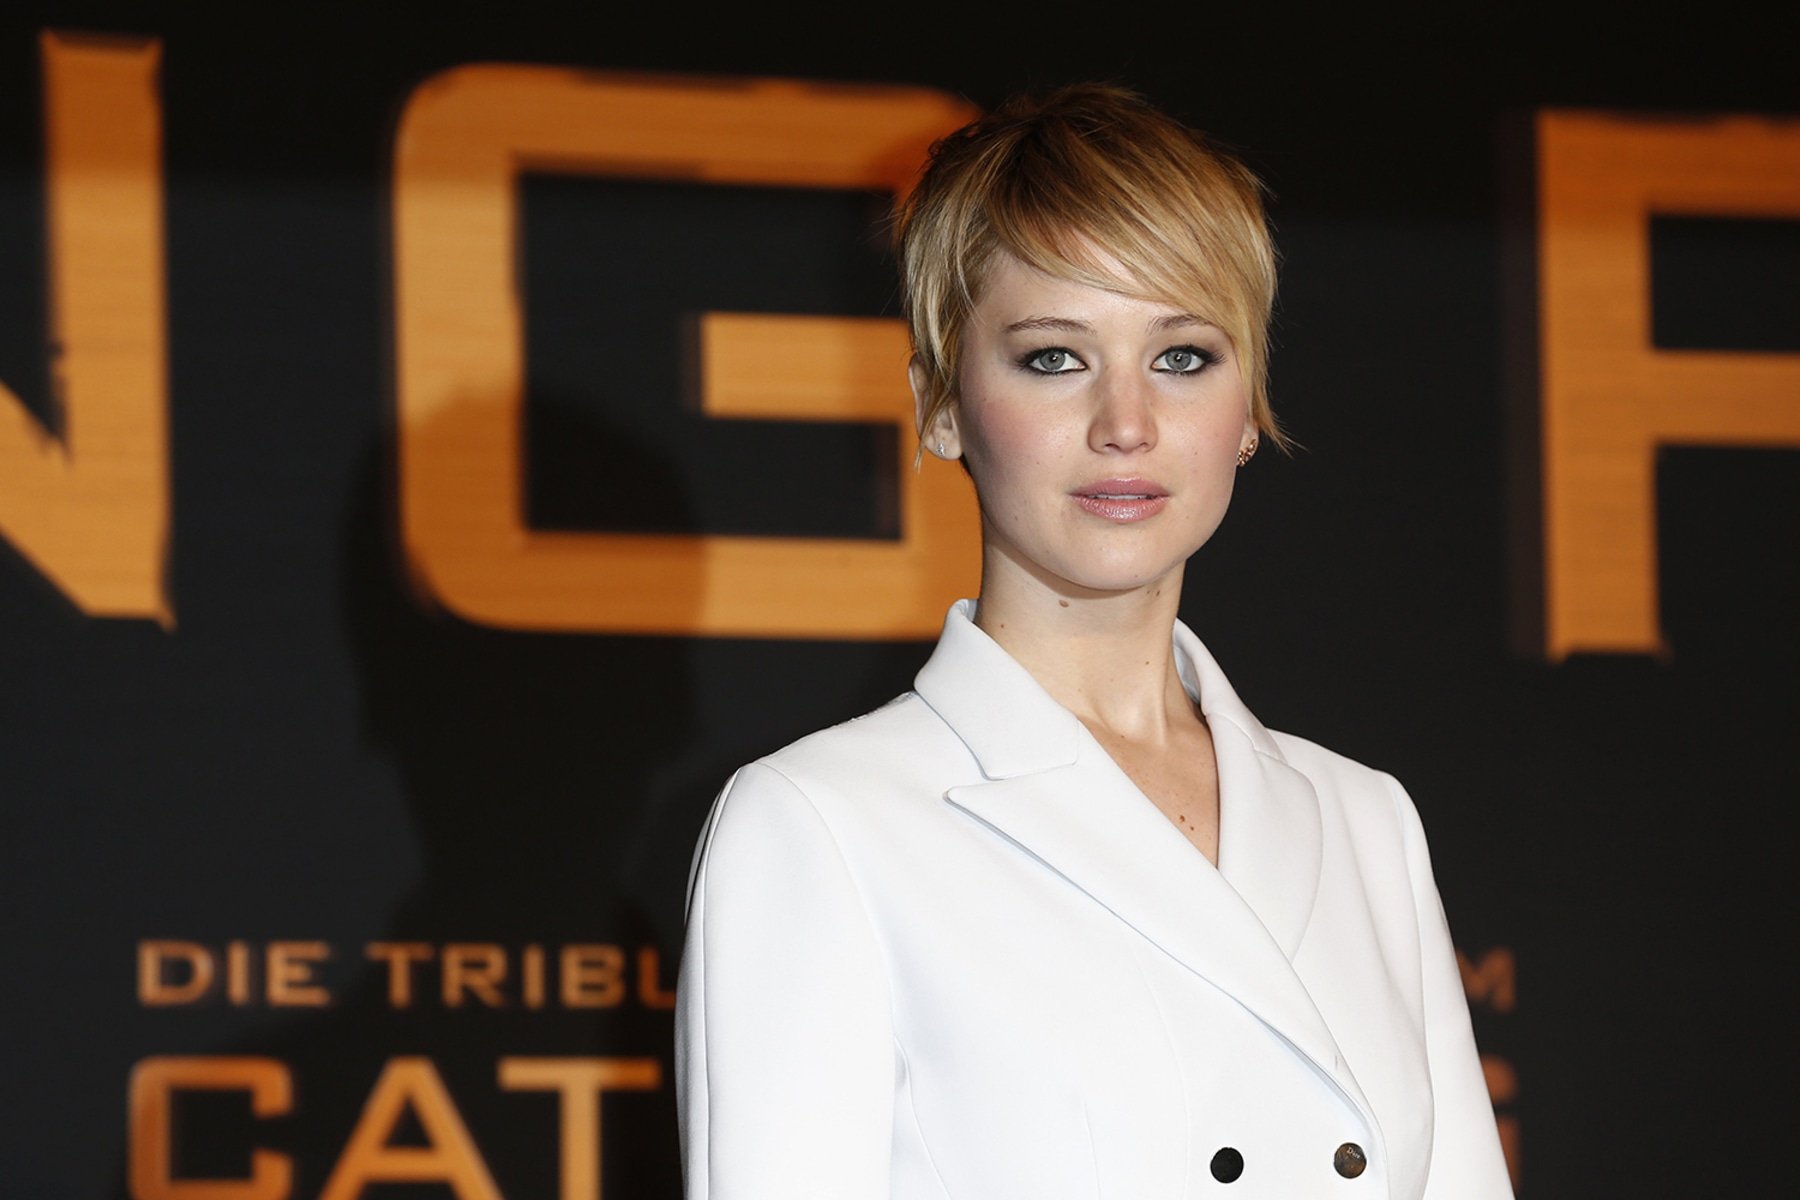 Image: BESTPIX -  'The Hunger Games - Catching Fire' Germany Premiere